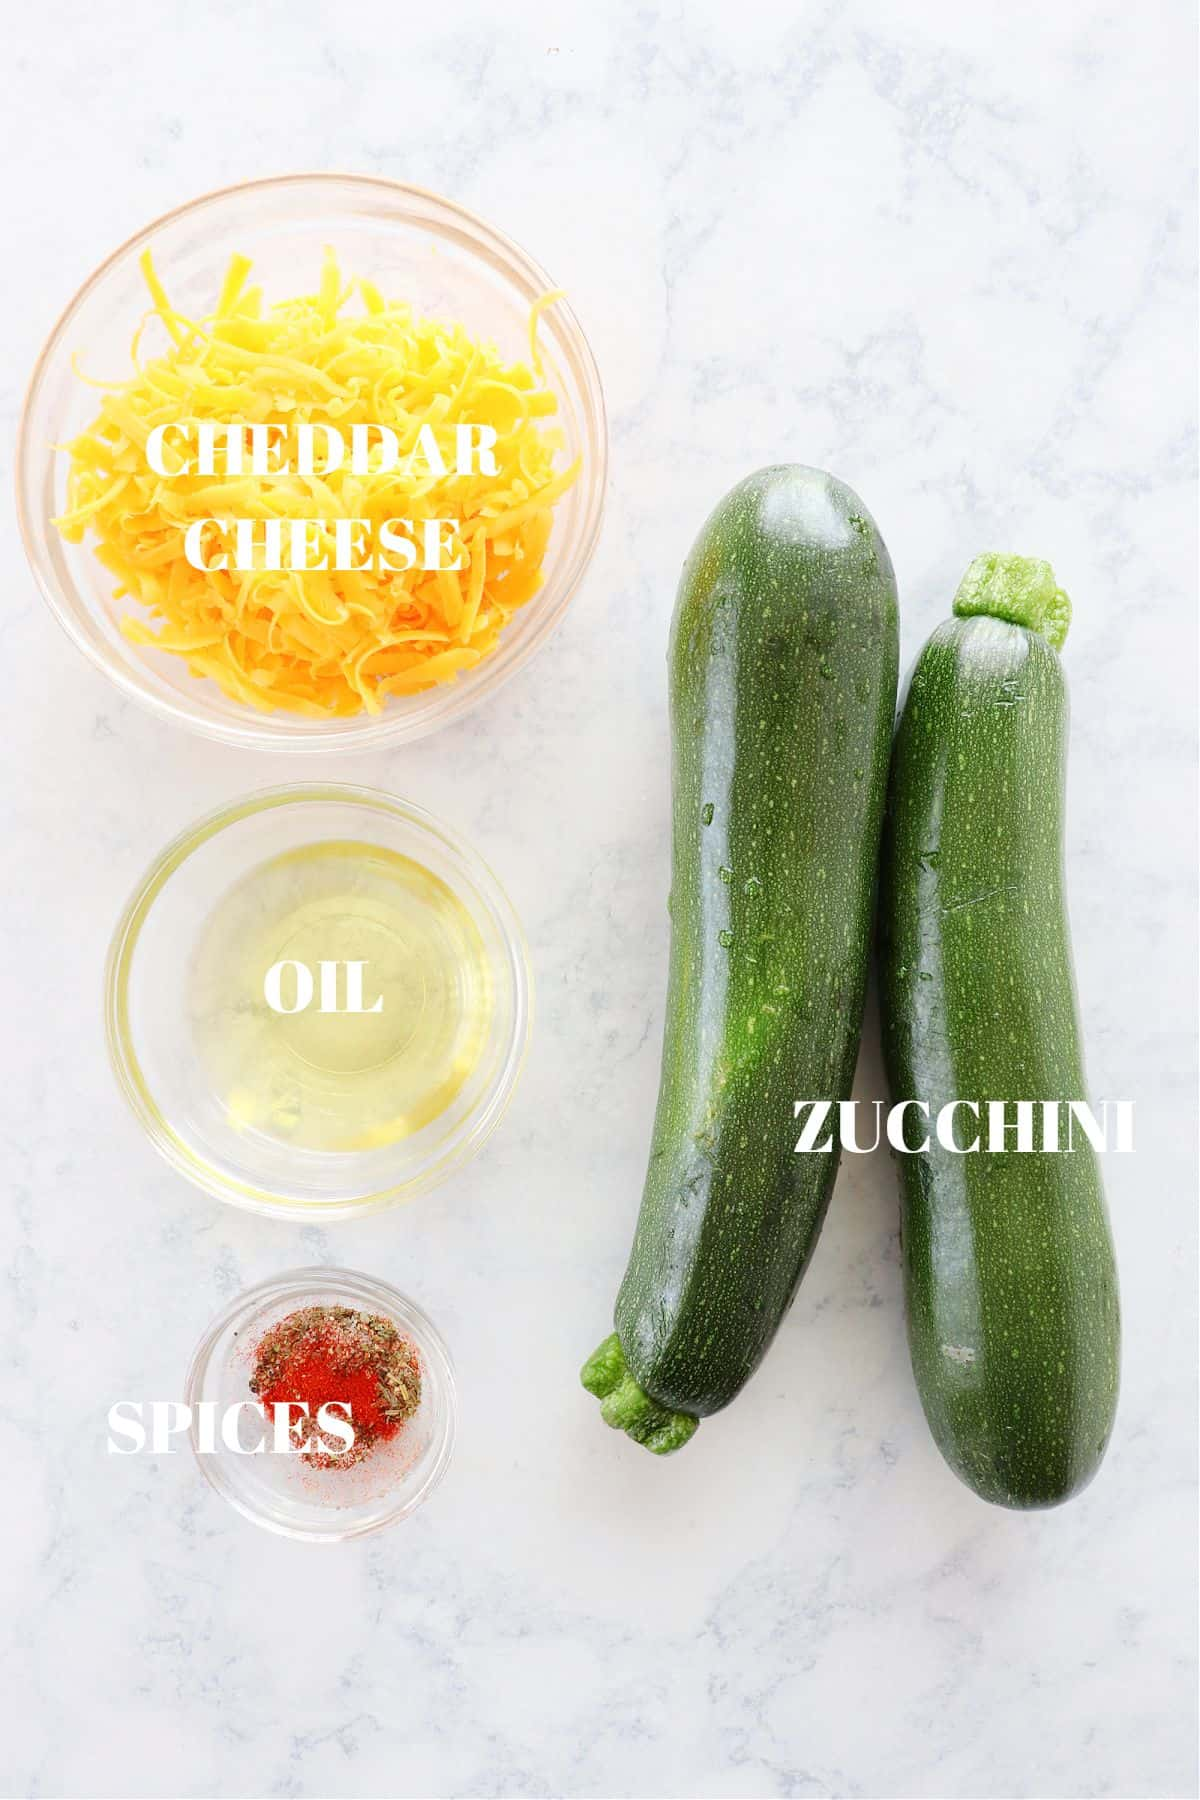 baked zucchini ingredients Cheddar Baked Zucchini